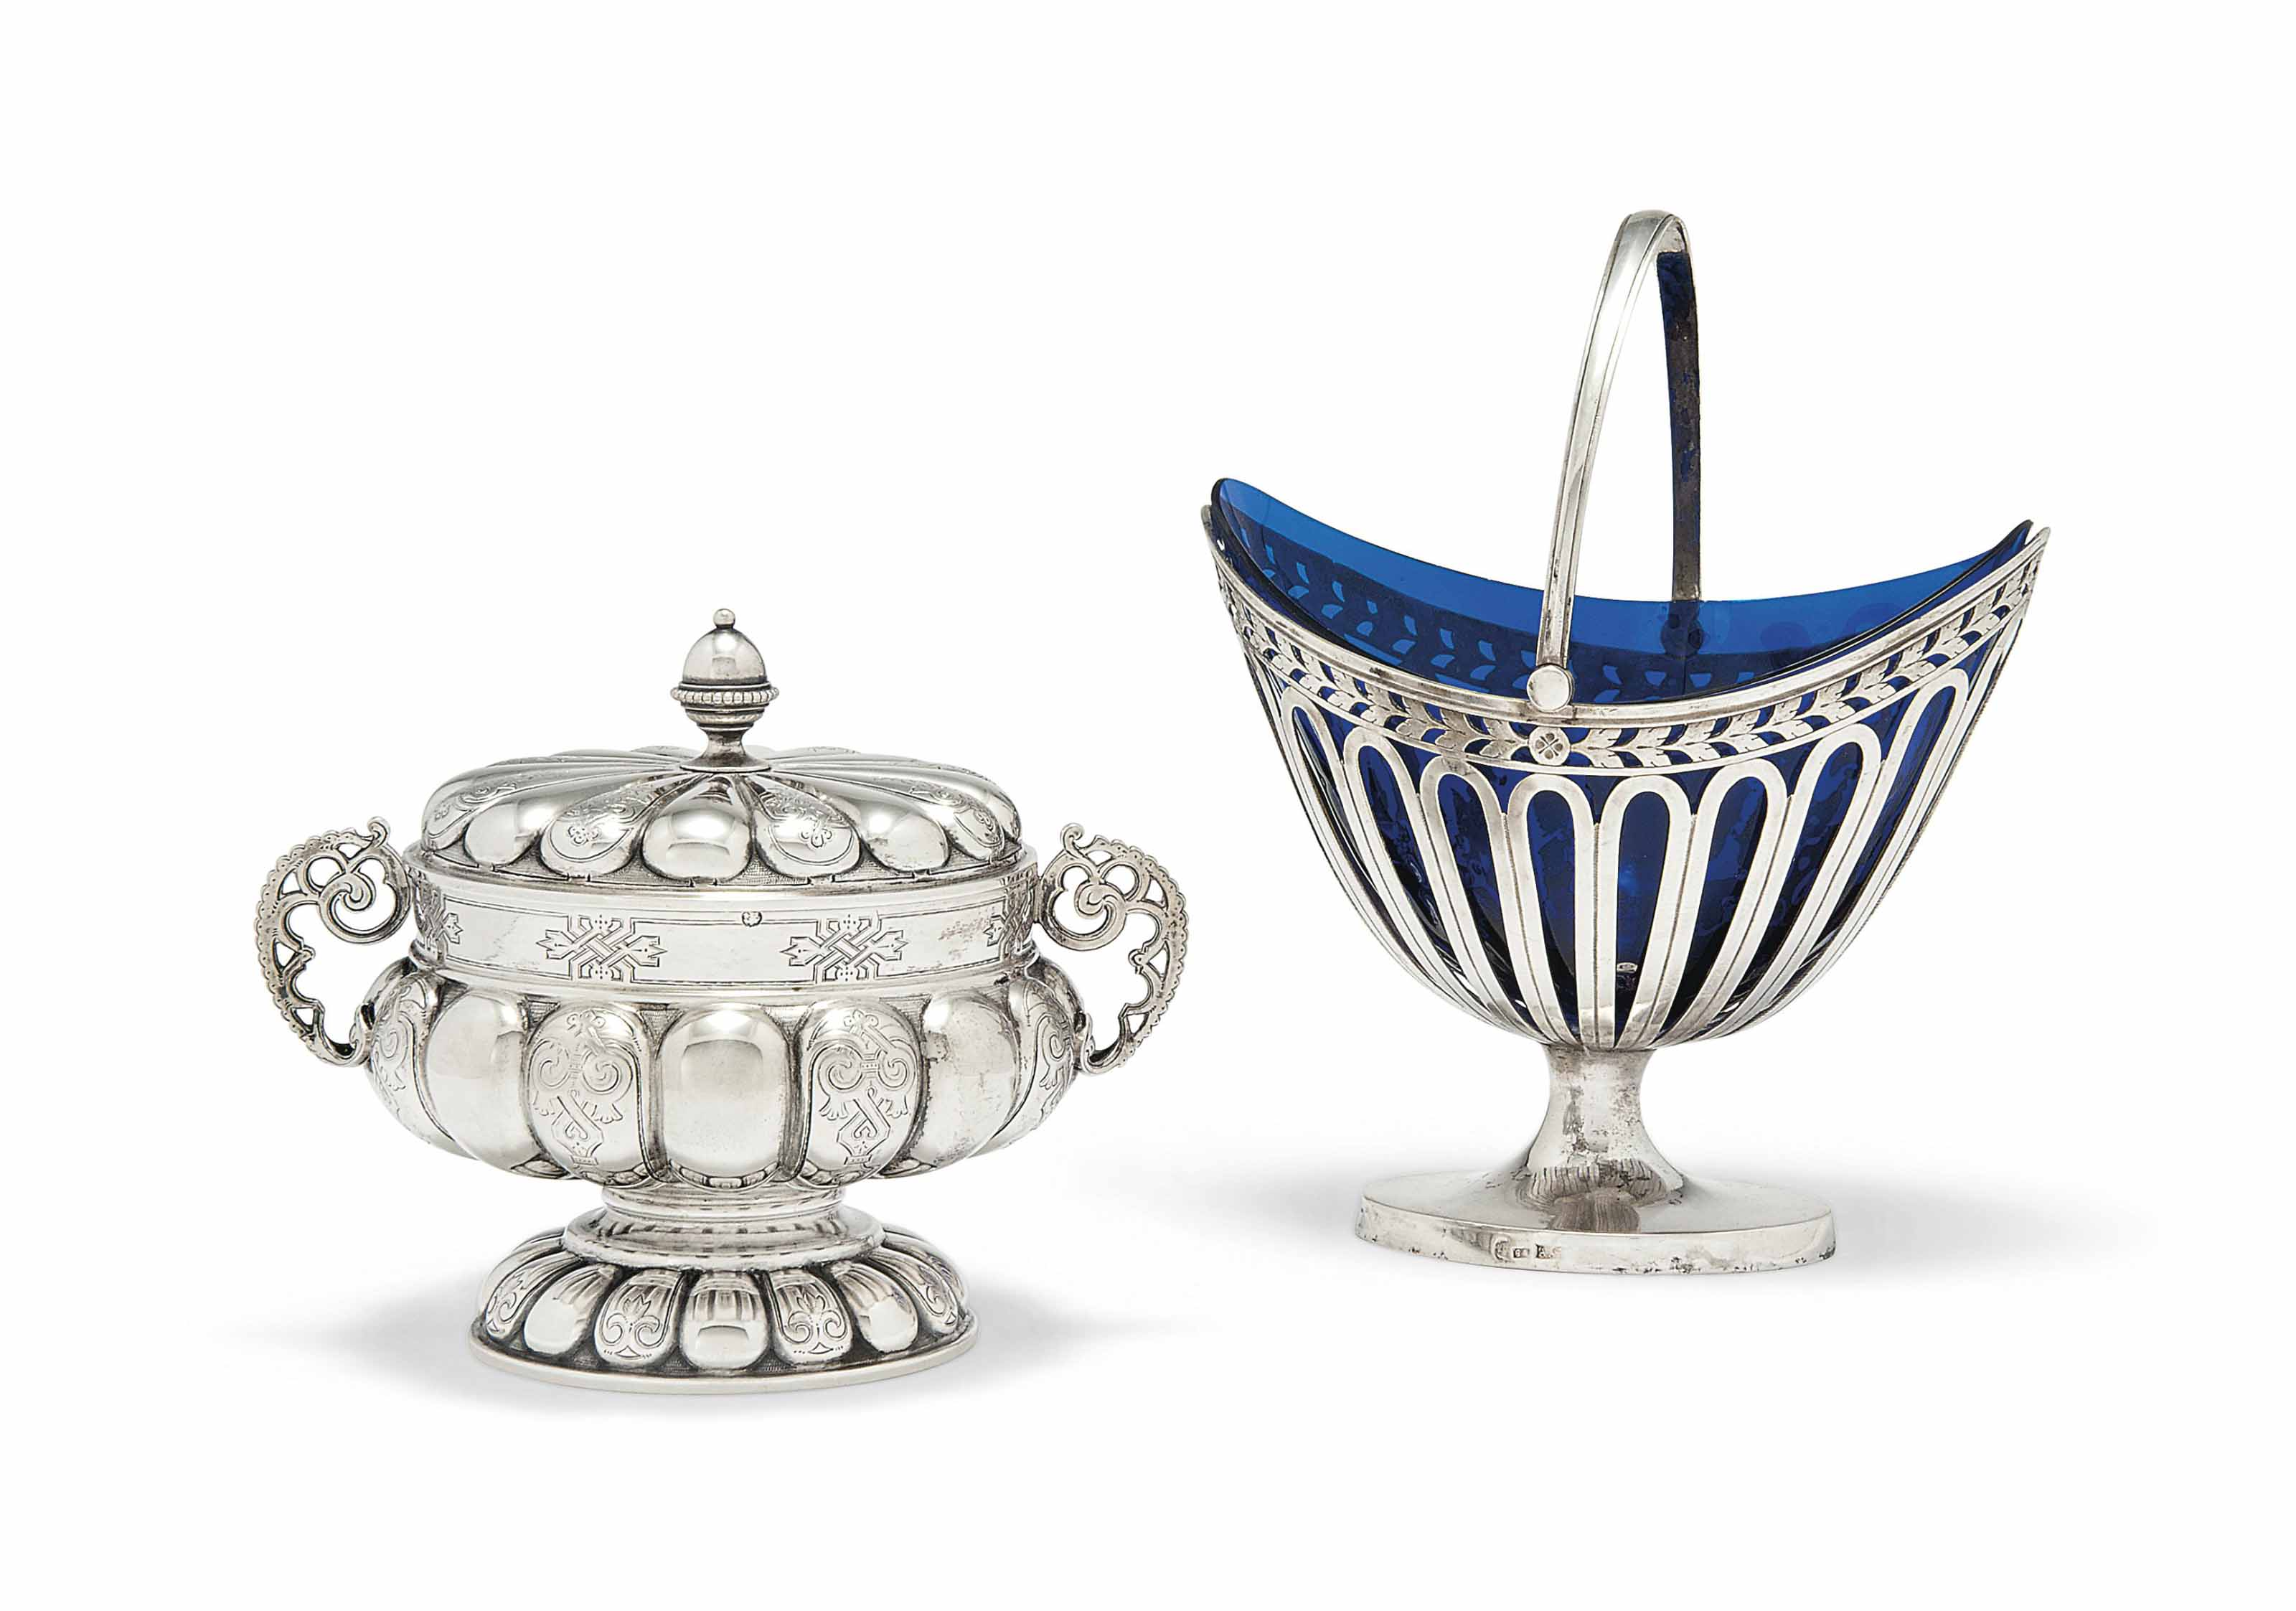 A RUSSIAN SILVER SWING-HANDLED